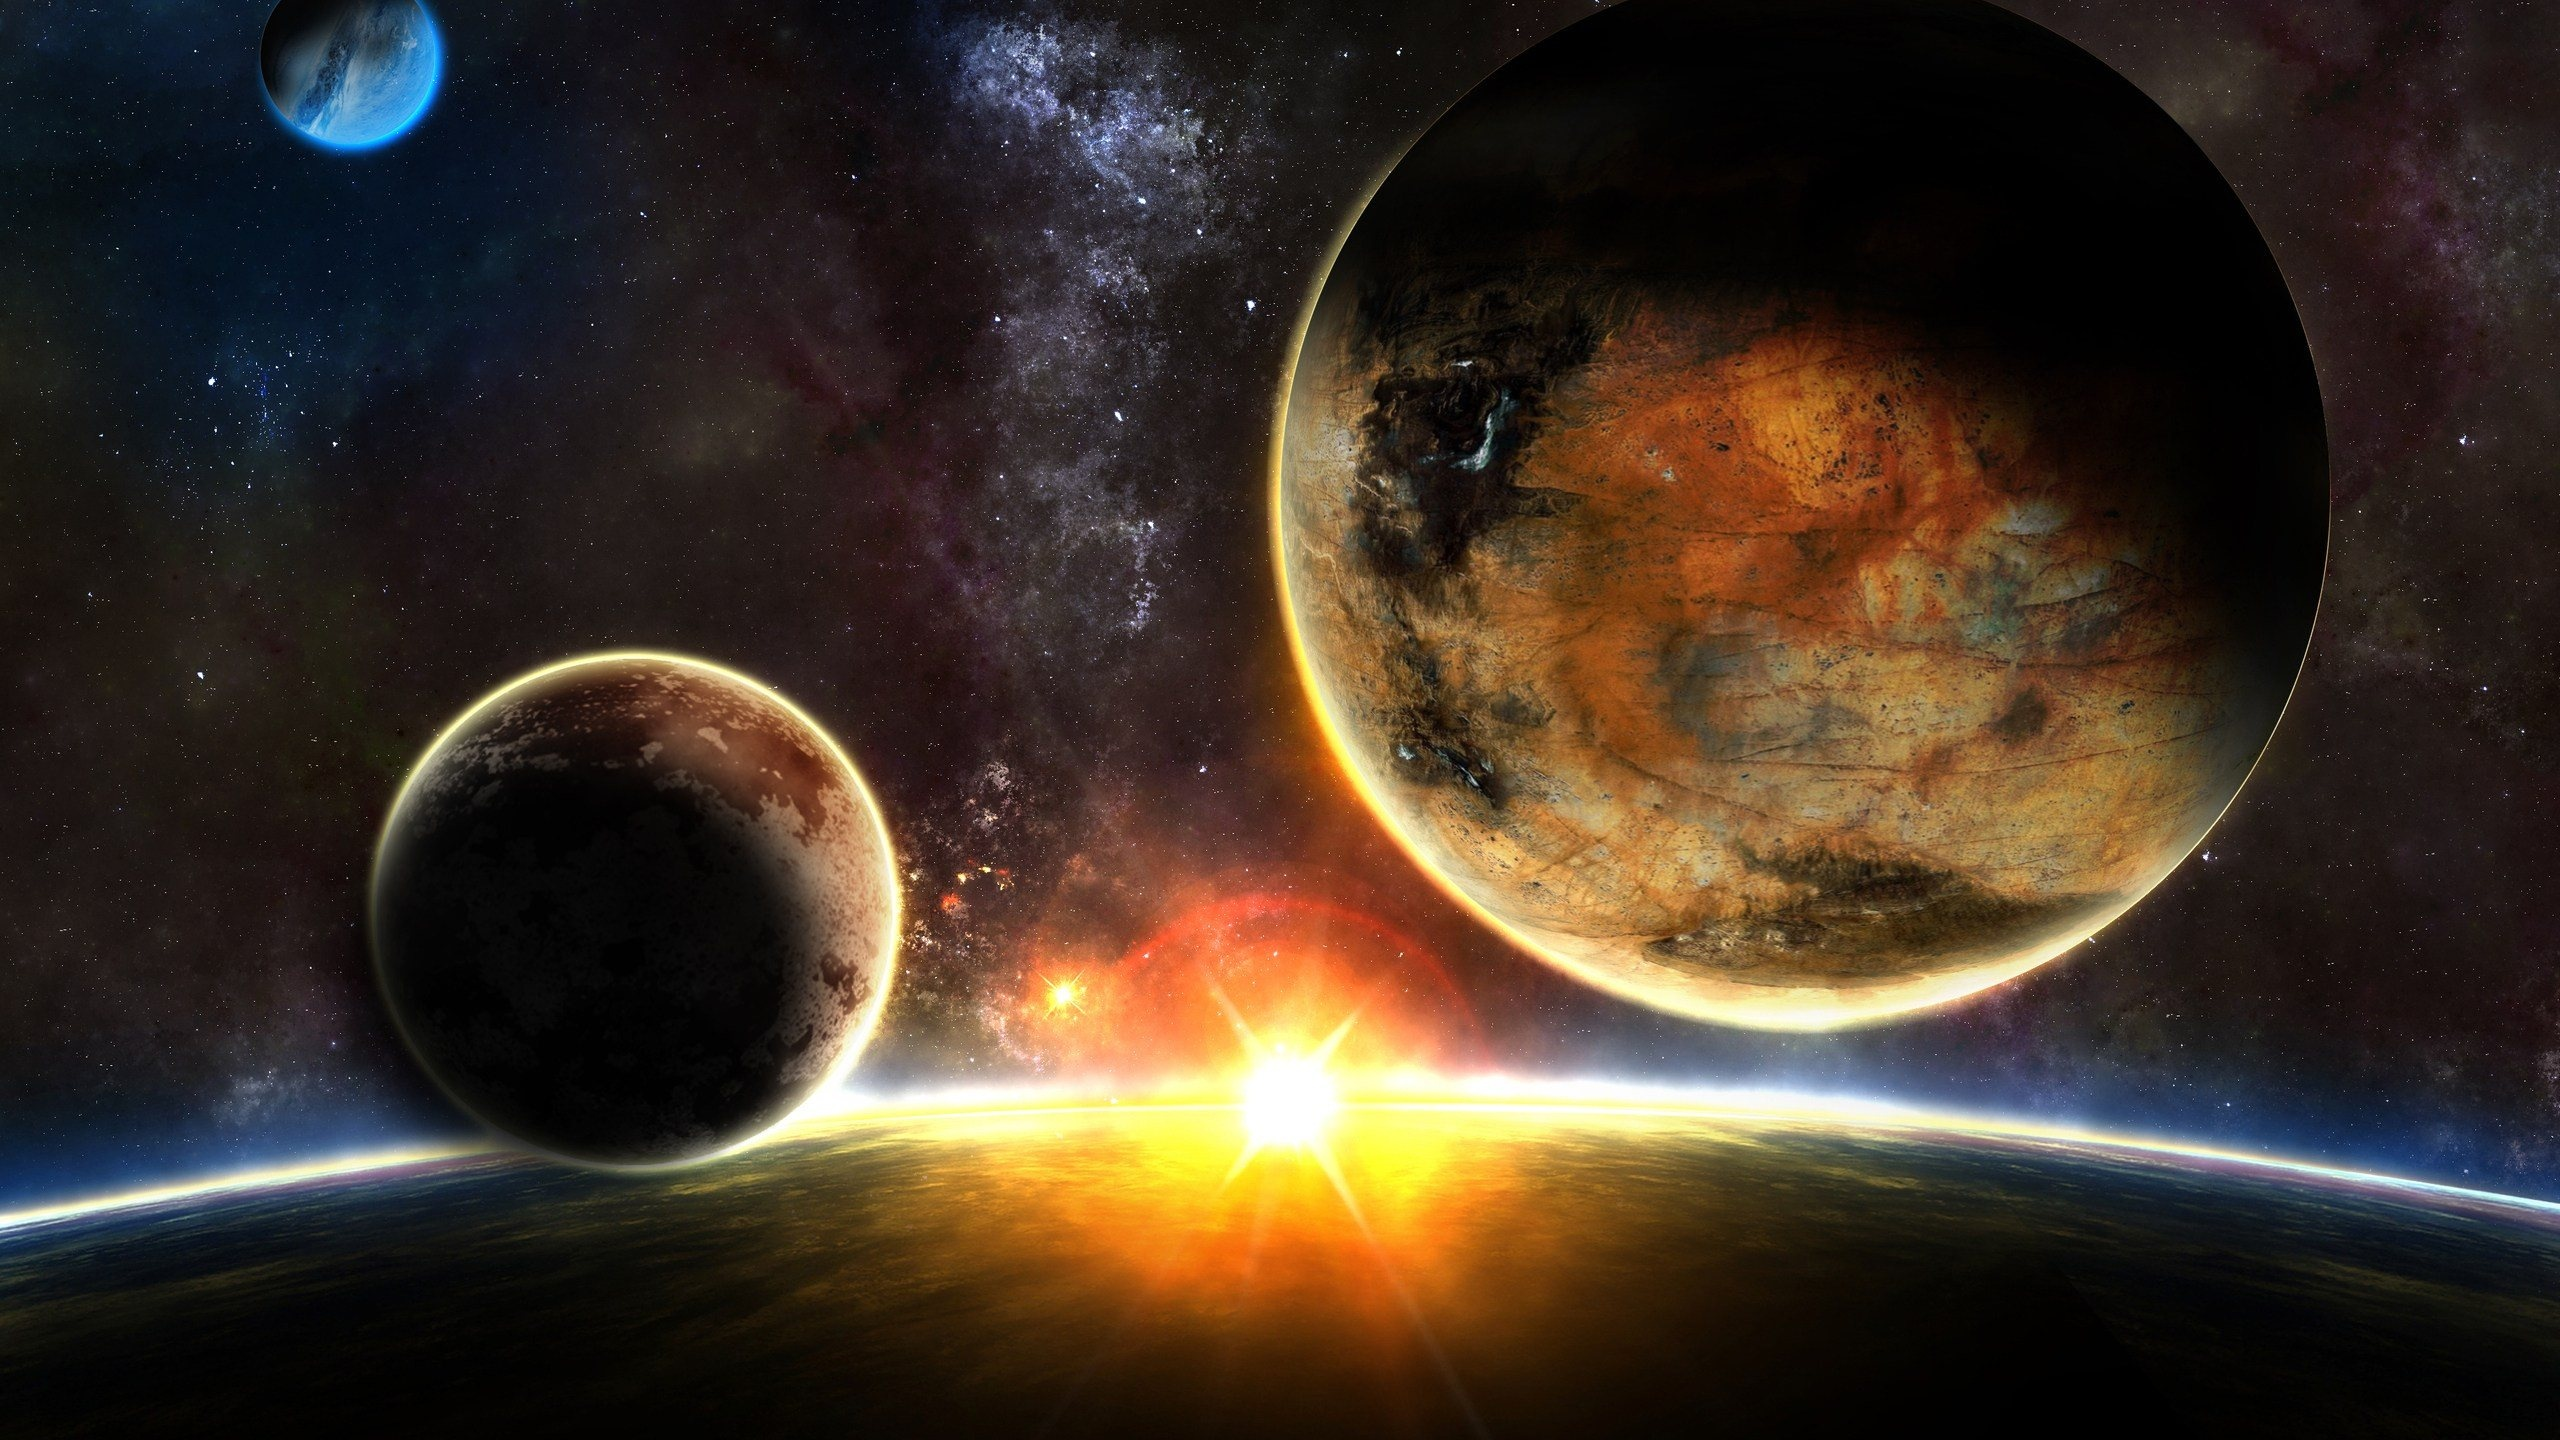 Space sunrise wallpapers 2560x1440 929013 - Space 2560 x 1440 ...